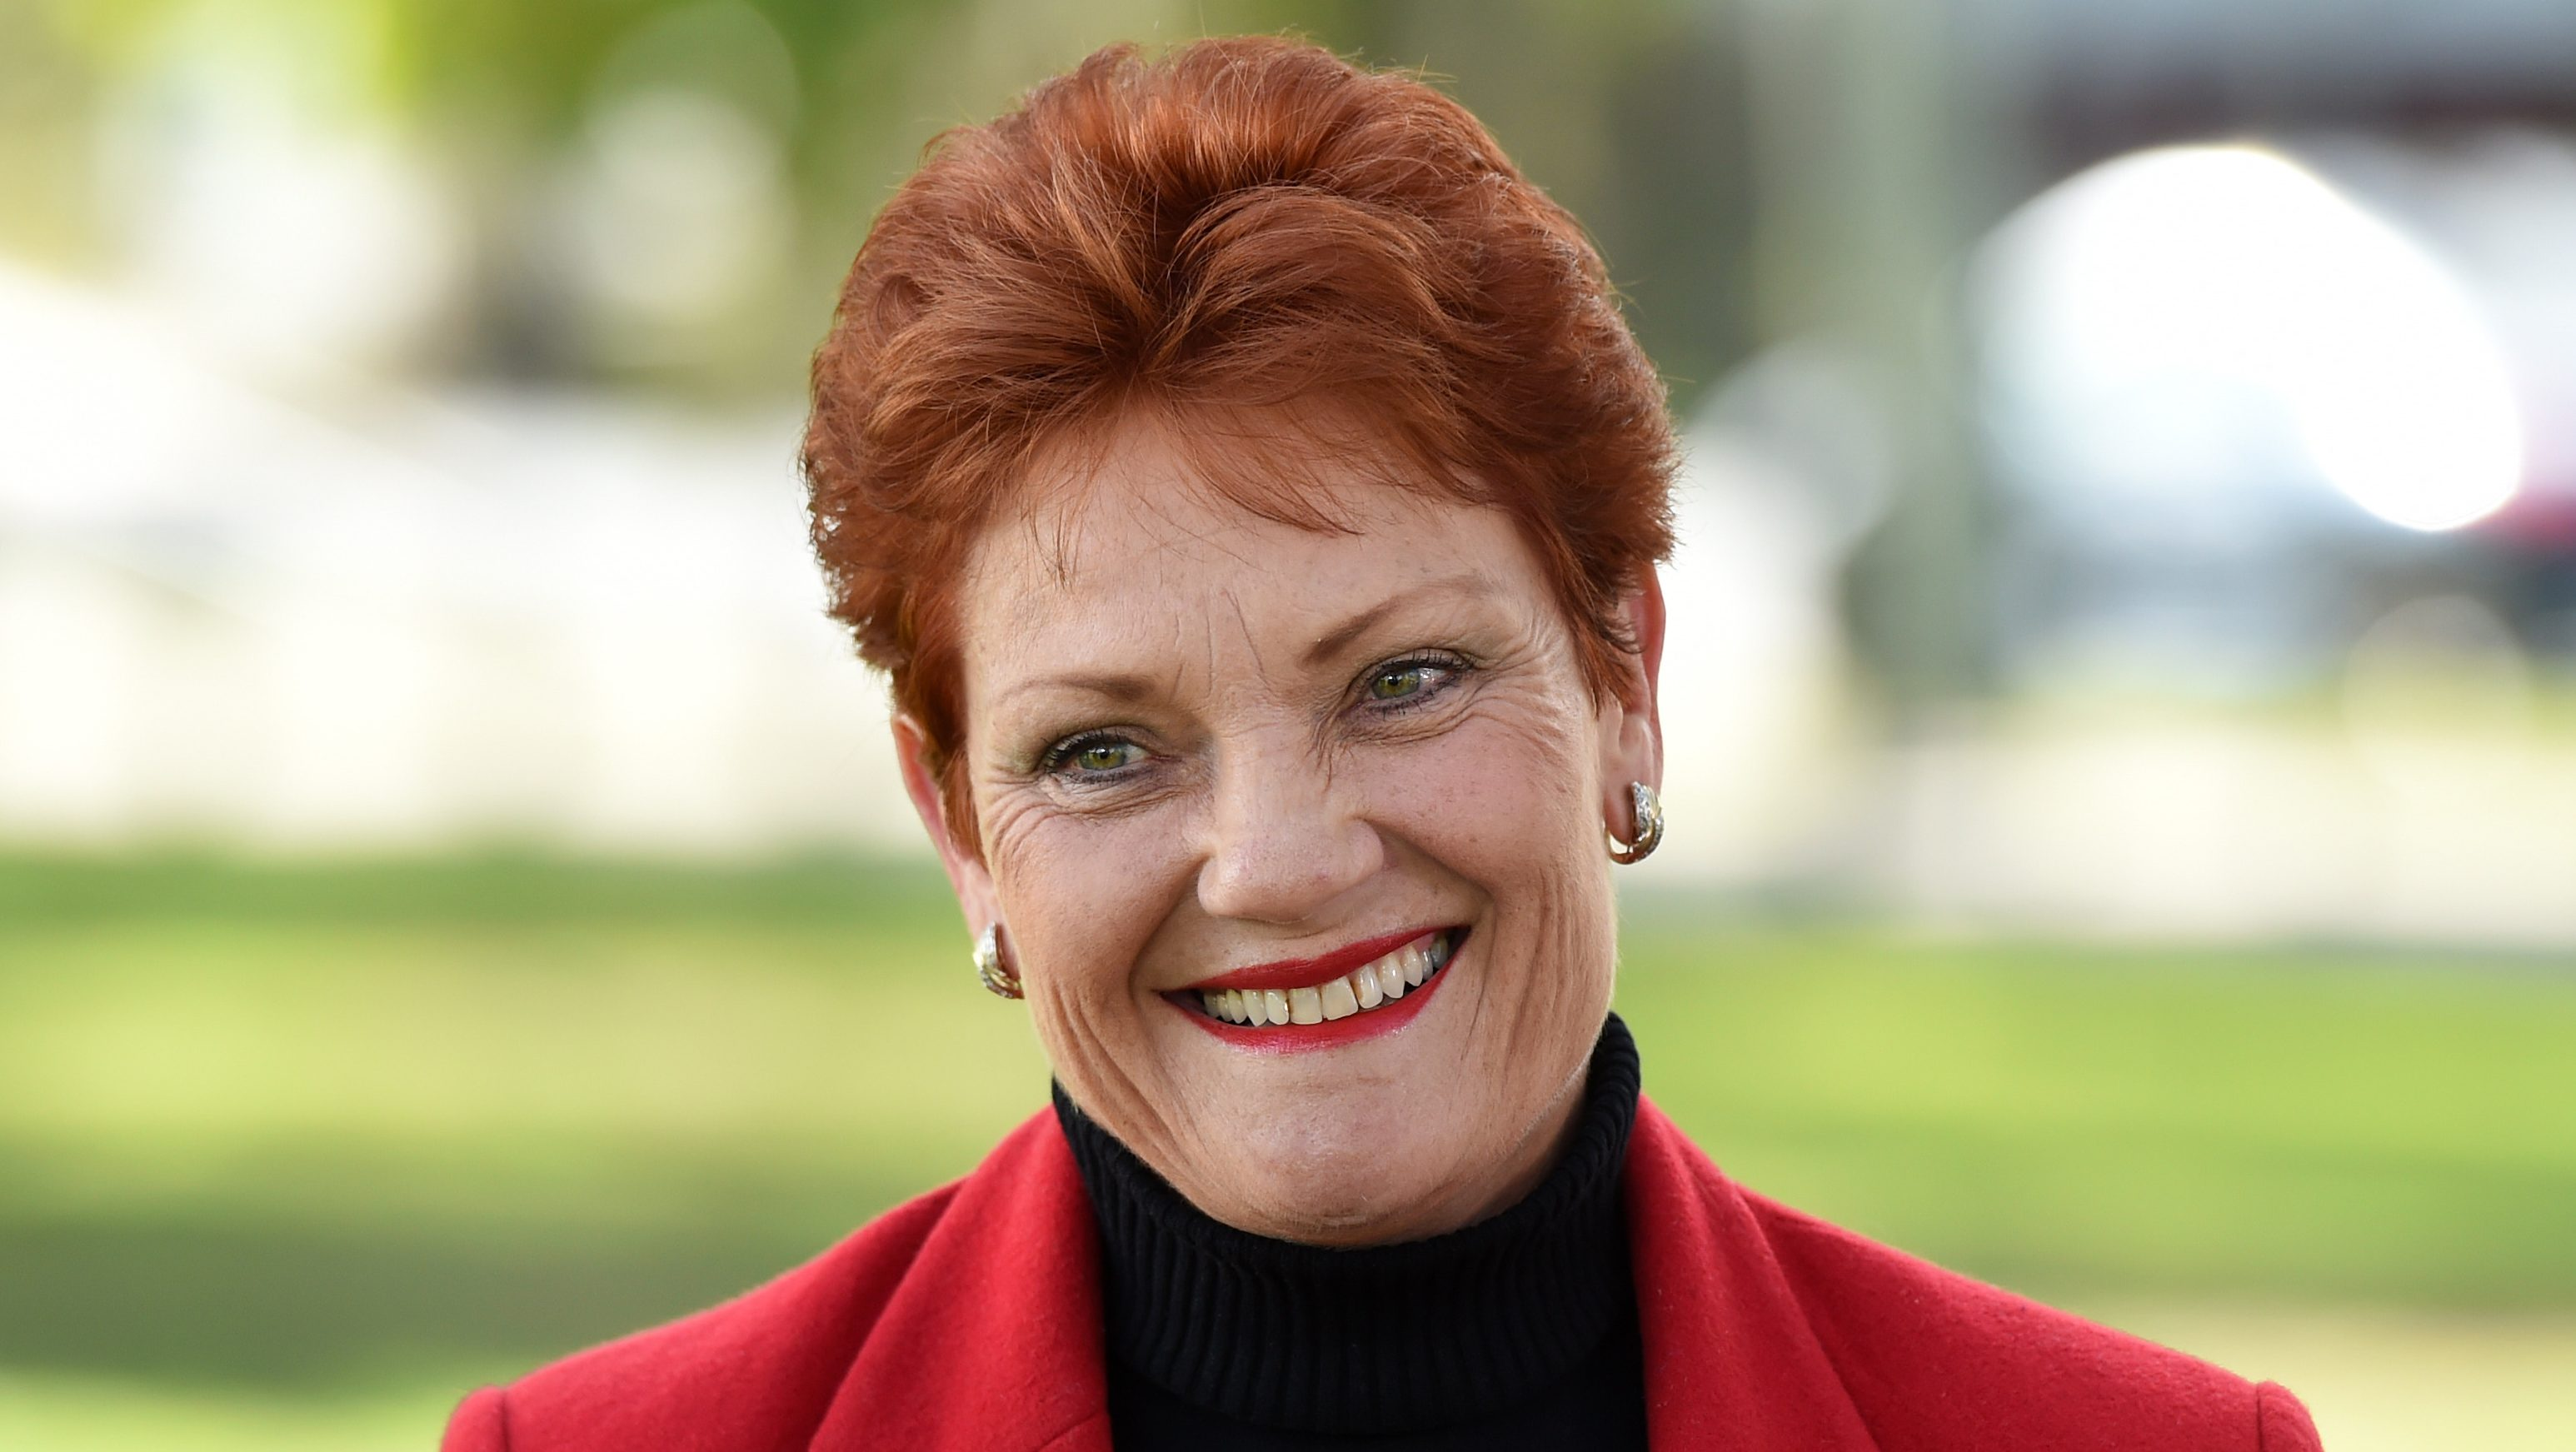 Queensland Senator-elect One Nation Party nominee Pauline Hanson takes questions from the media during a news conference in Brisbane, Australia, 04 July 2016. The One Nation Party is expected to win two Senate seats in Queensland, one in New South Wales and possibly one in Western Australia.